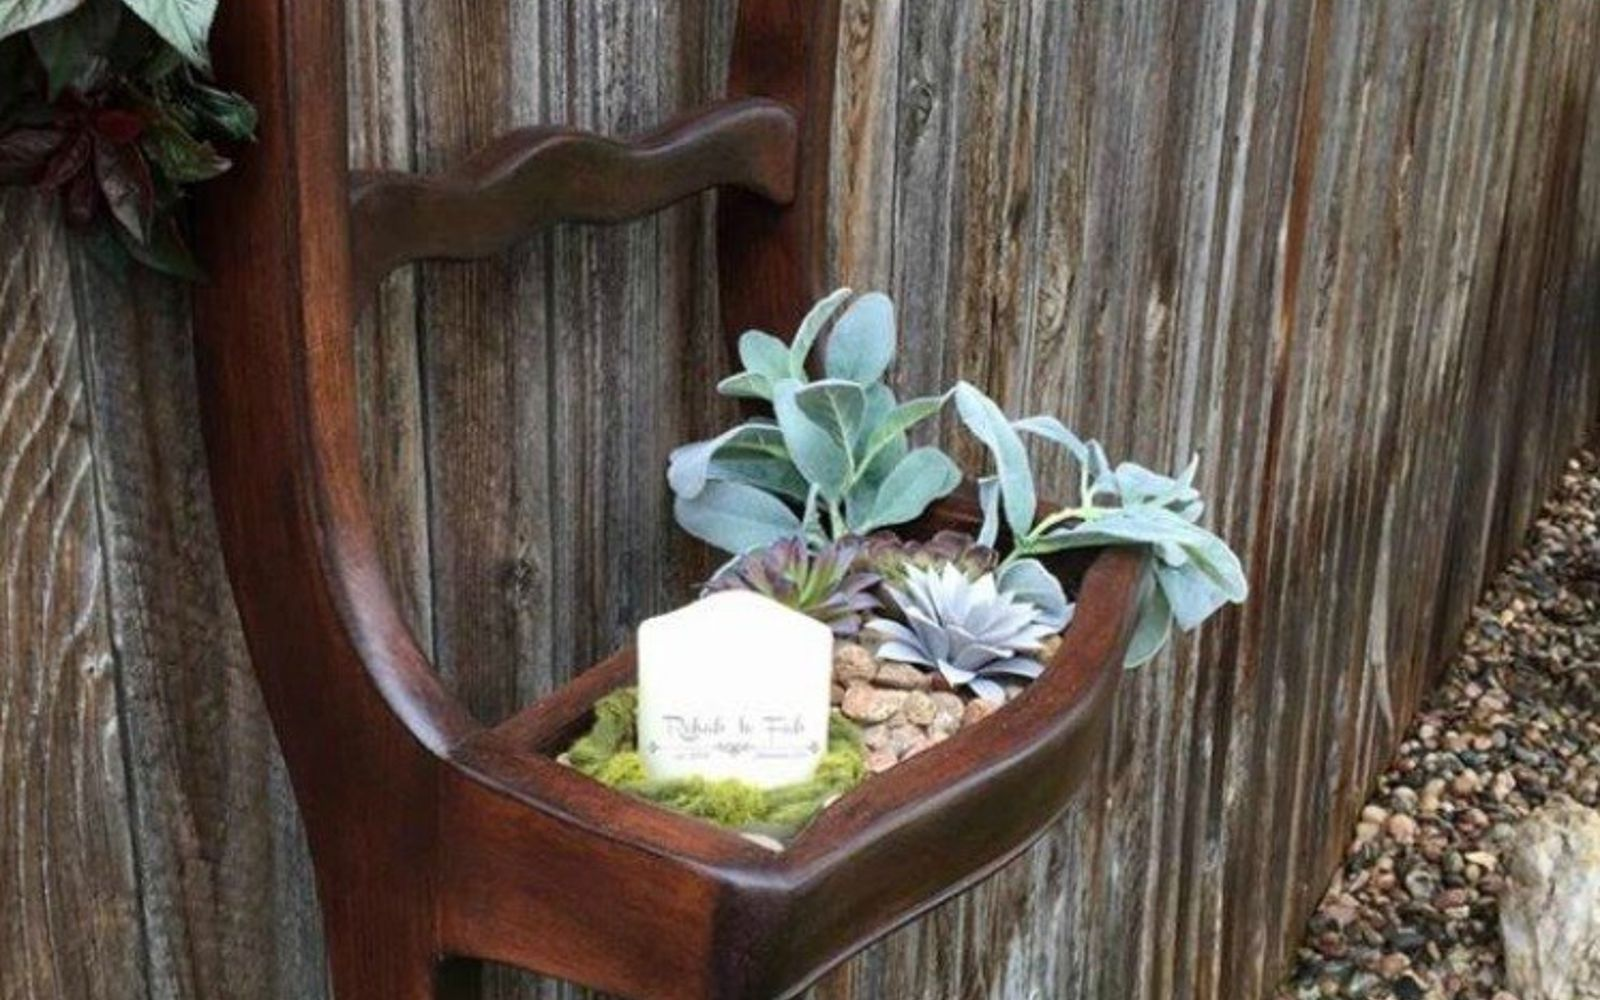 s 17 insanely fun ways to display your favorite succulents, flowers, gardening, succulents, Hang some up in an old broken chair